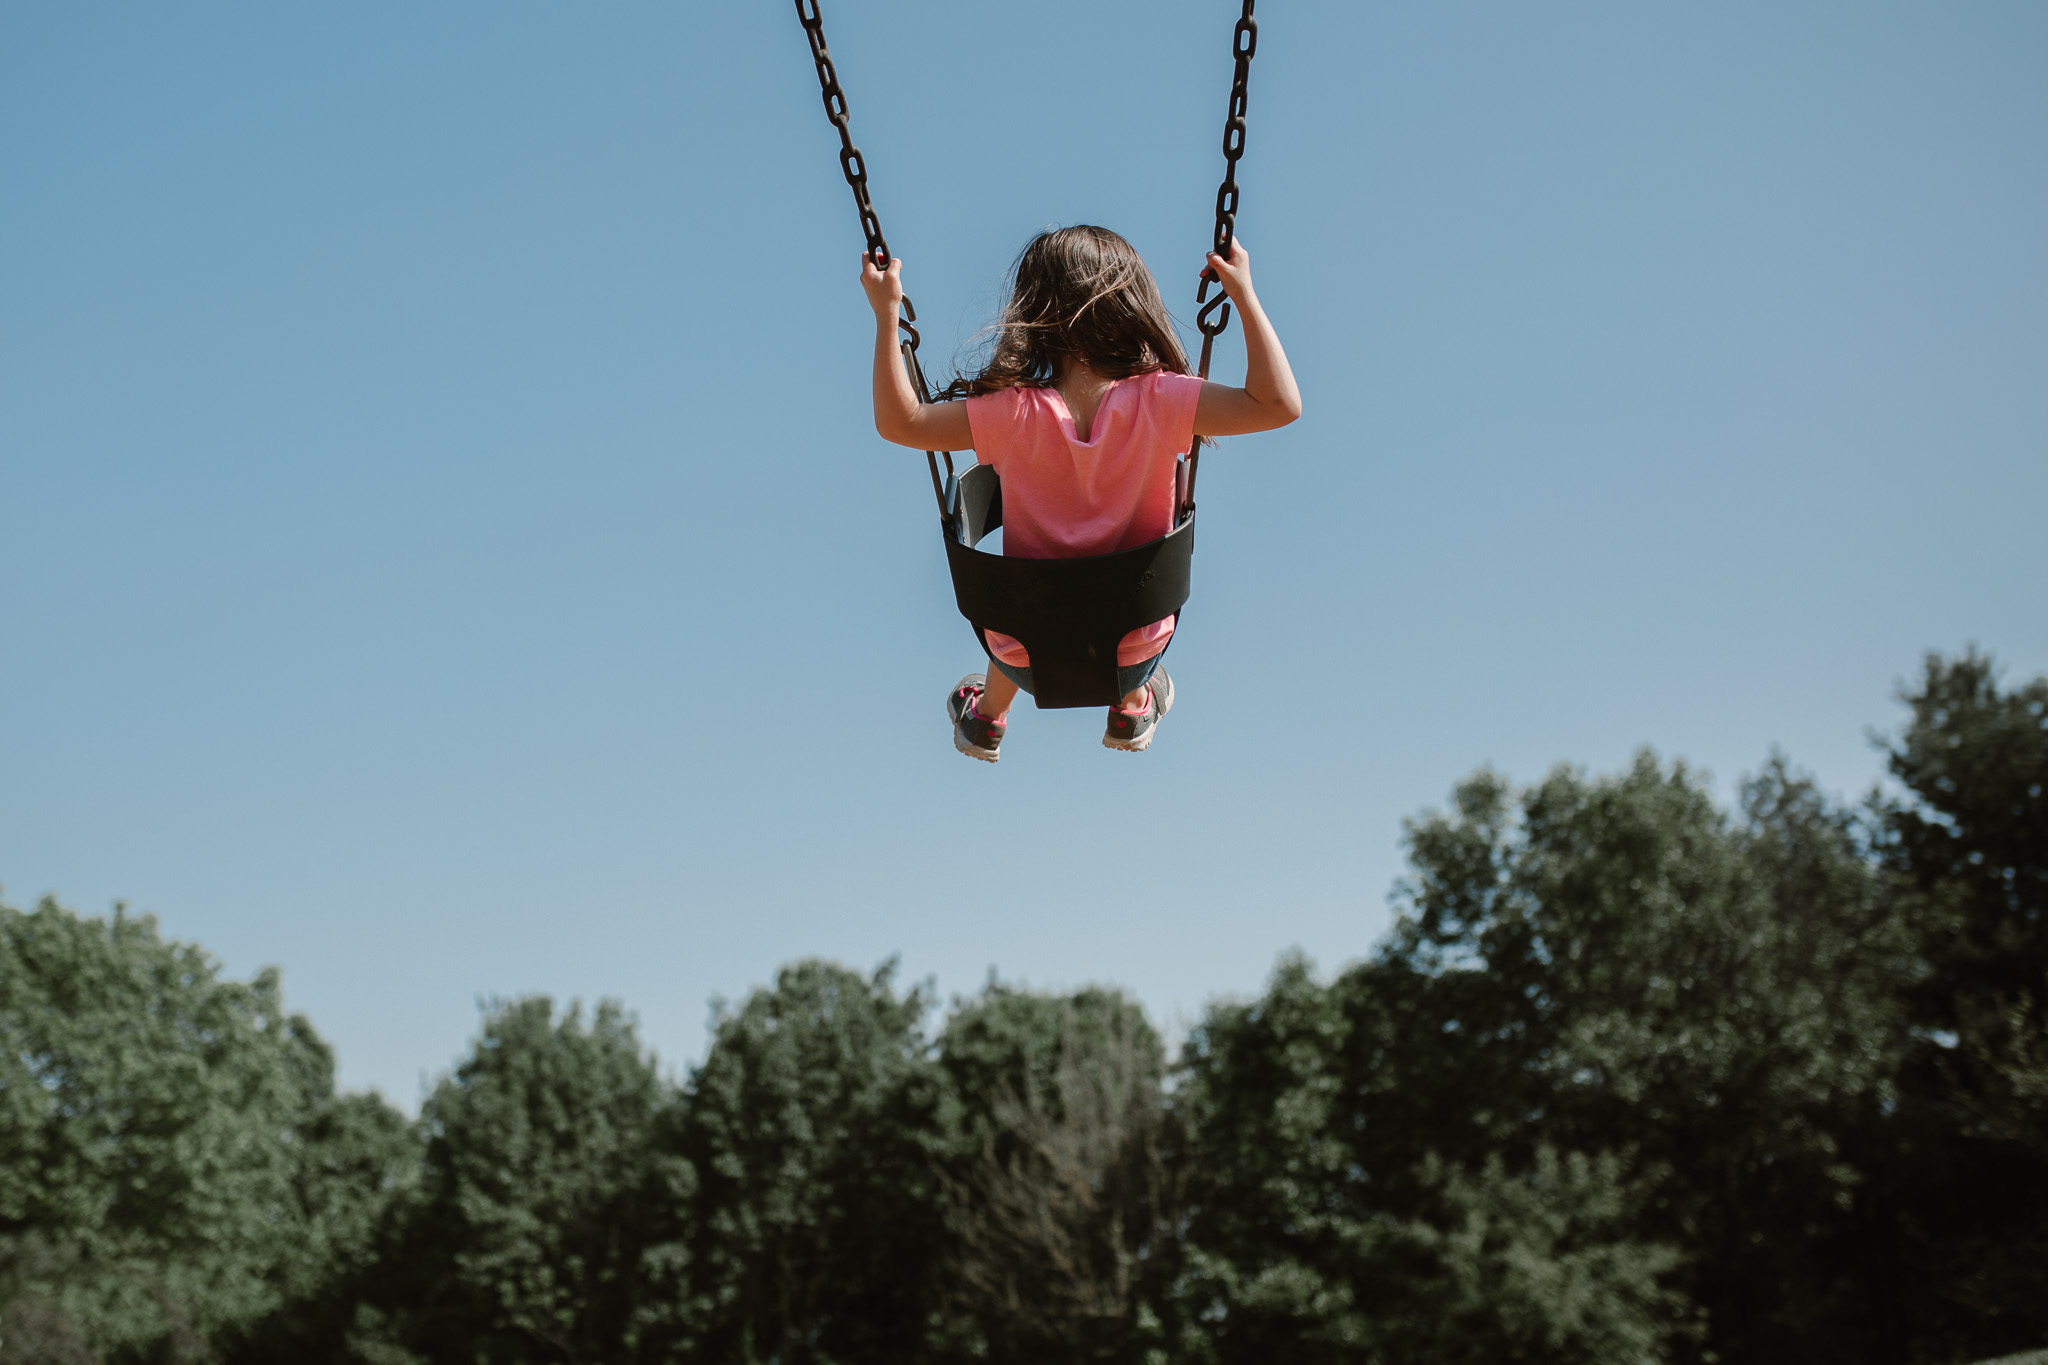 Girl in a pink shirt swinging high on a clear blue day documentary photography ashburn Virginia